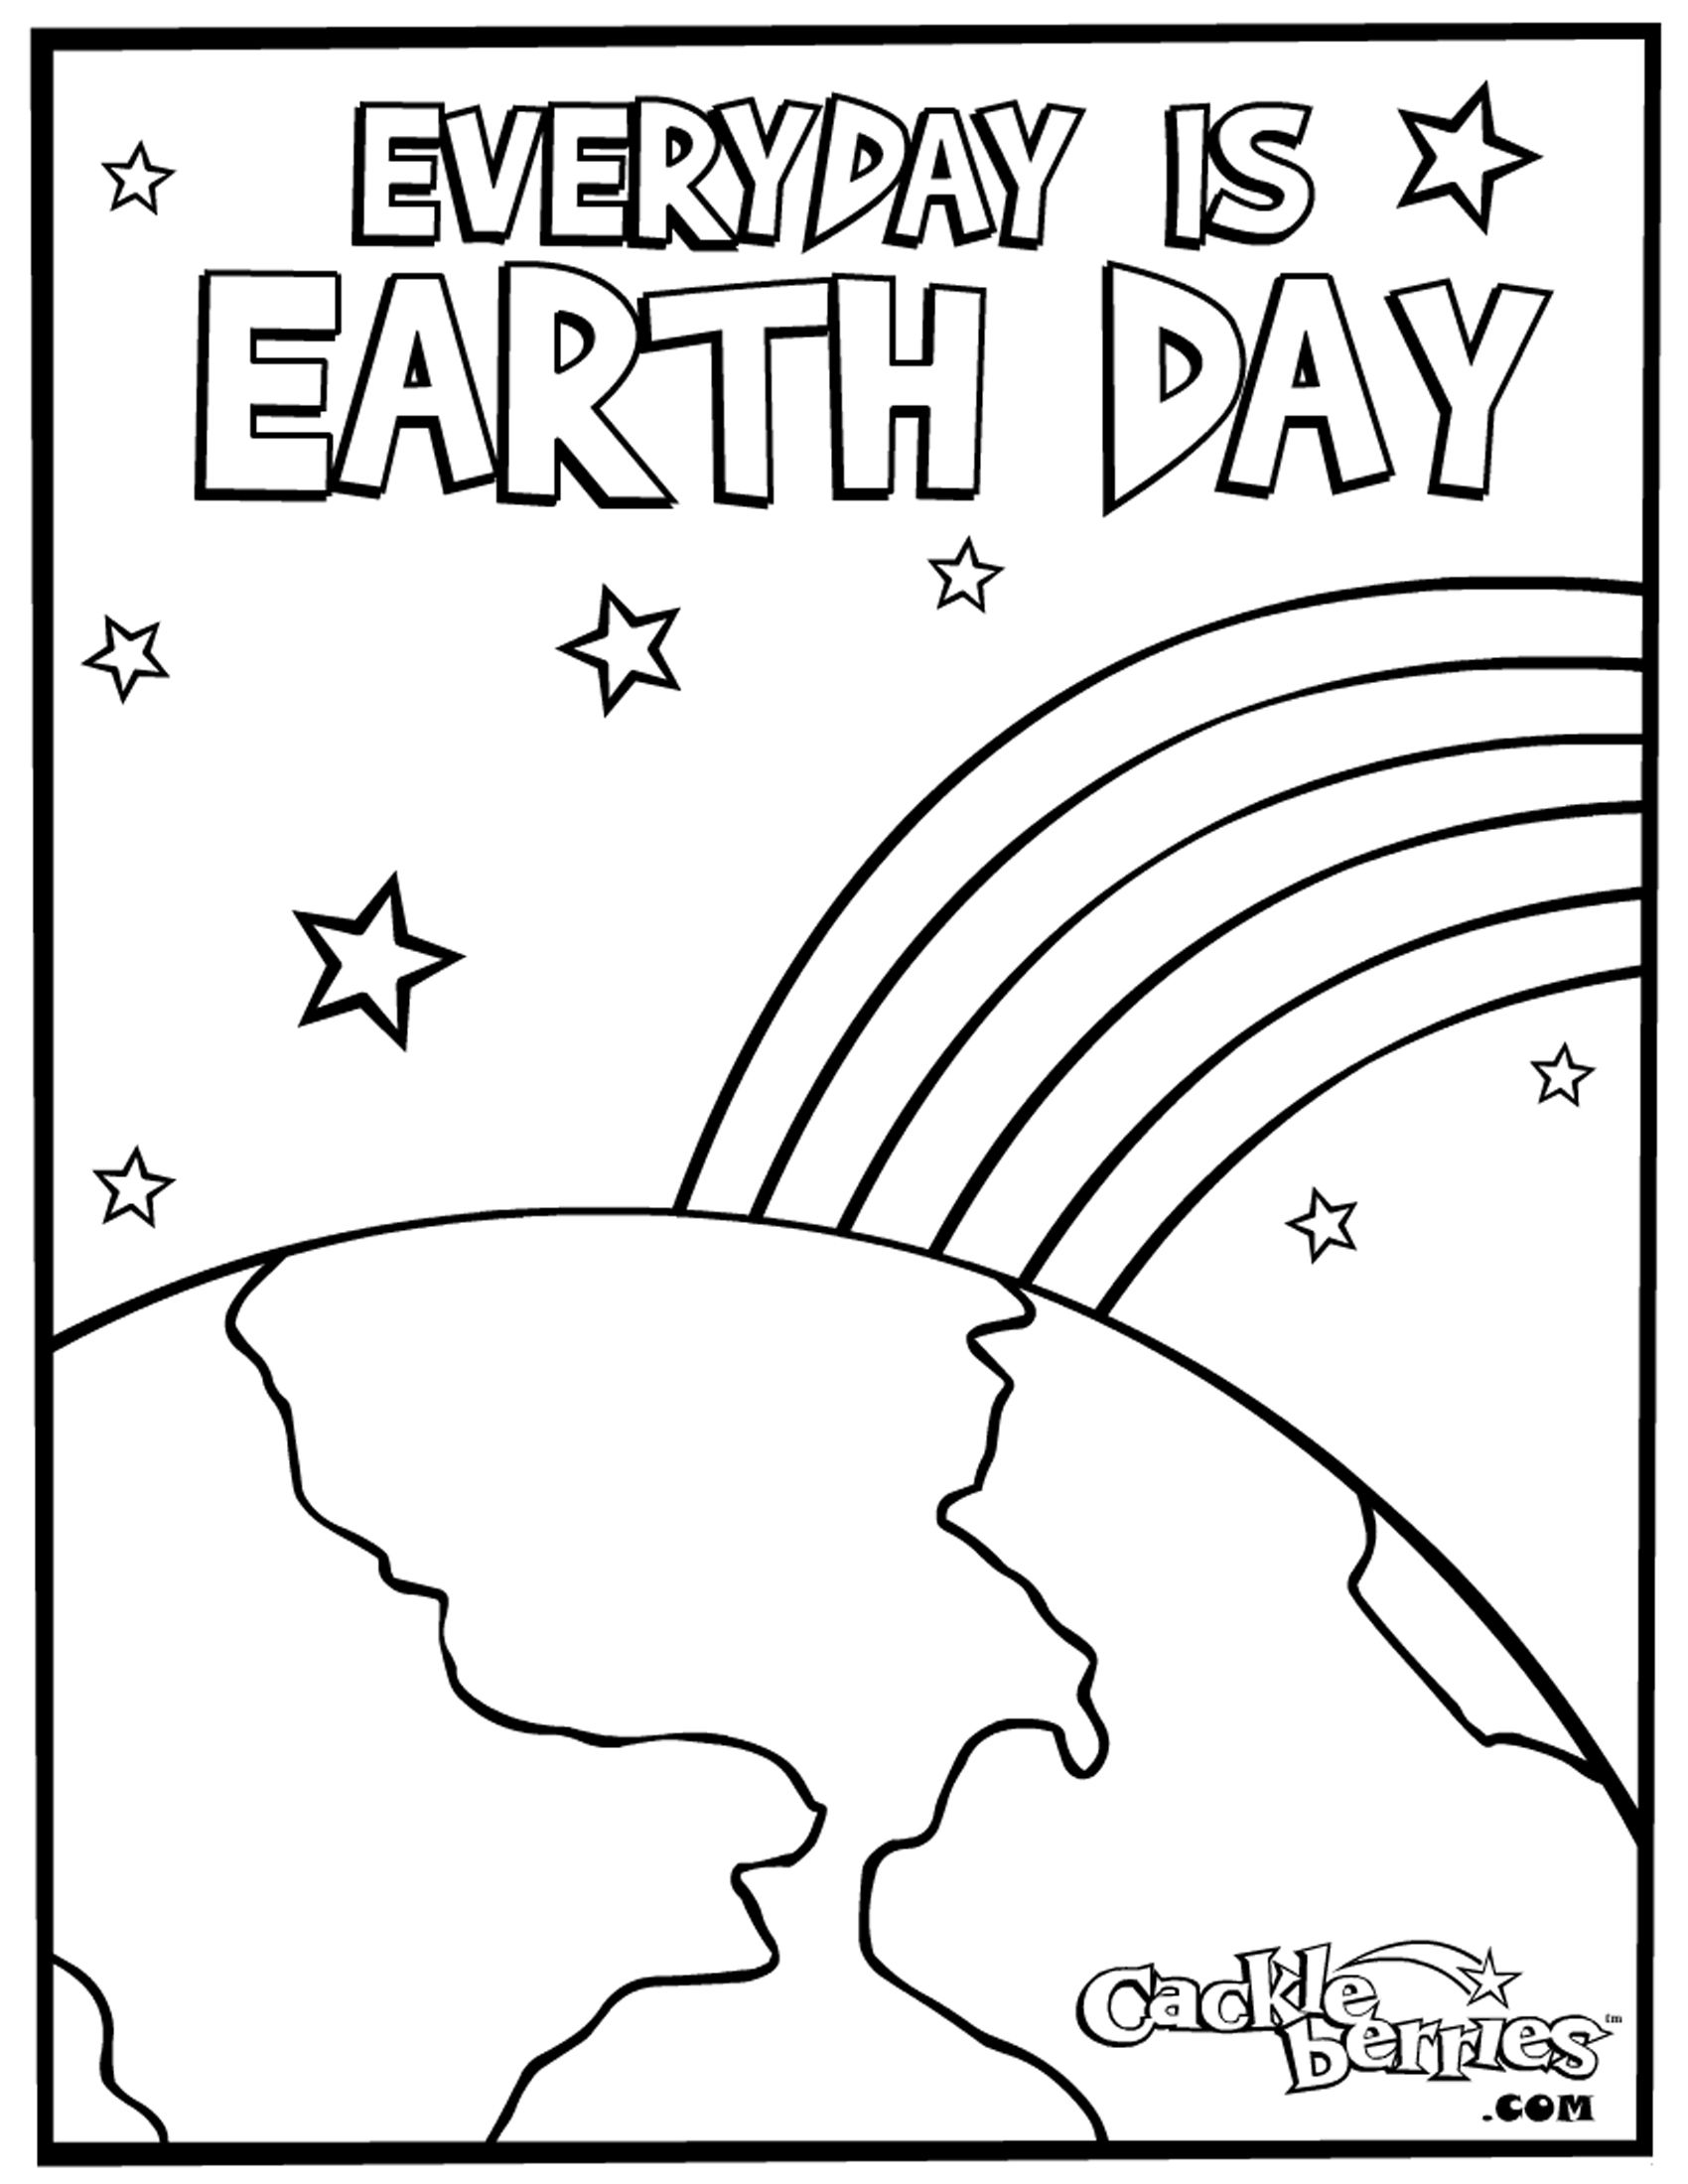 earth day coloring sheets - Pesquisa do Google | fichas | Pinterest ...